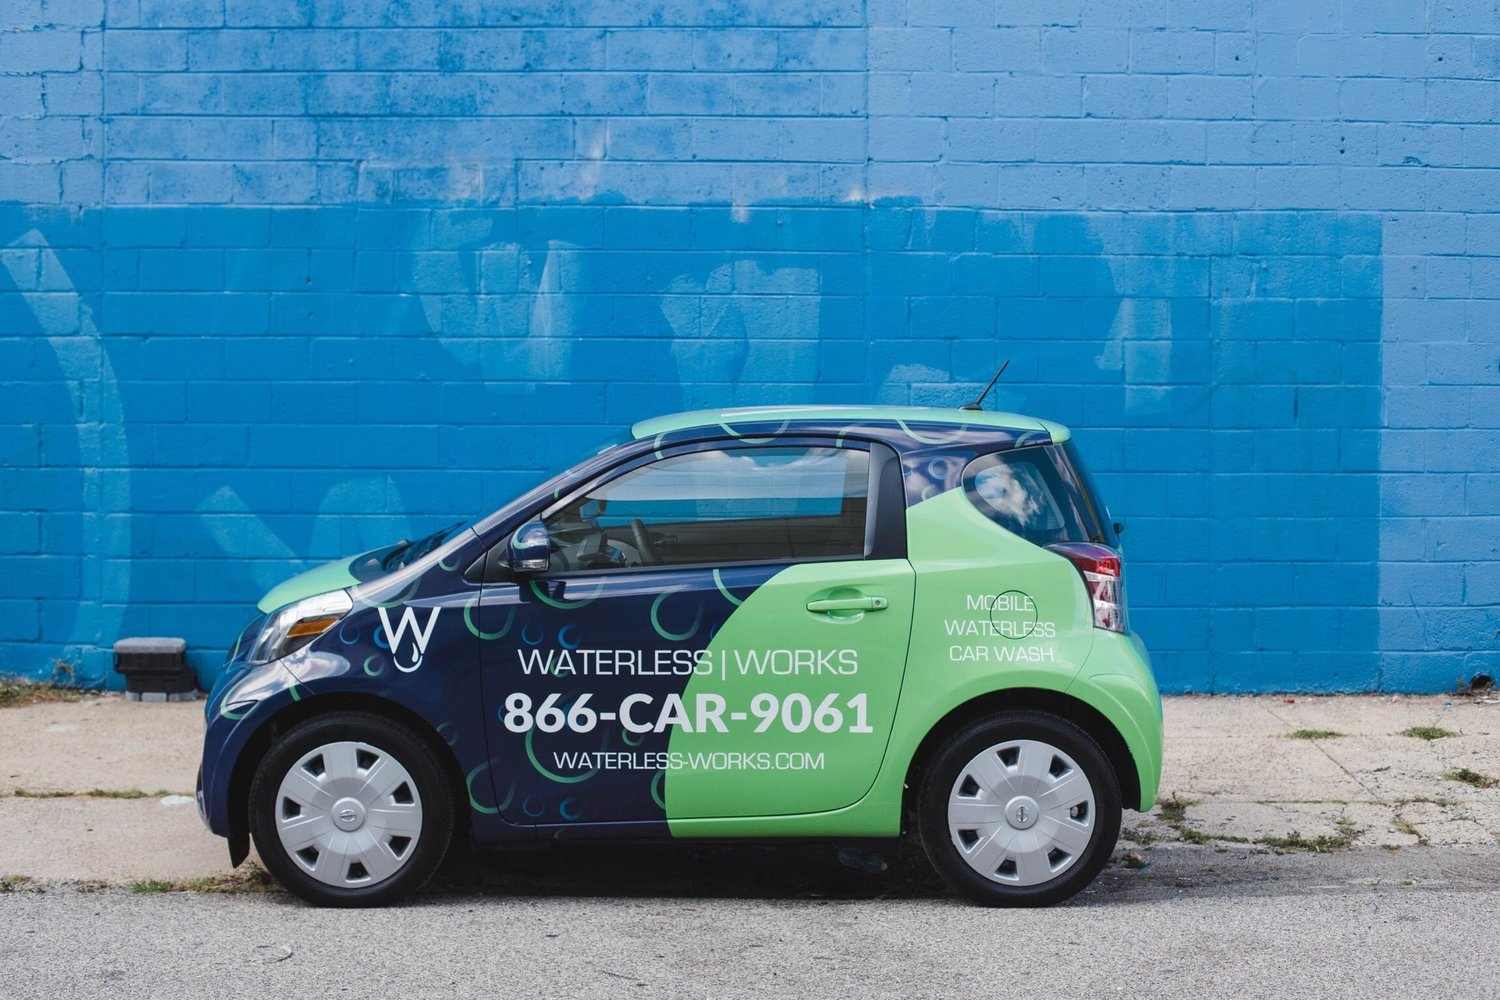 Broomall's Waterless Works Car Wash Can Expand After Purchase by Parent Company of Blue Book